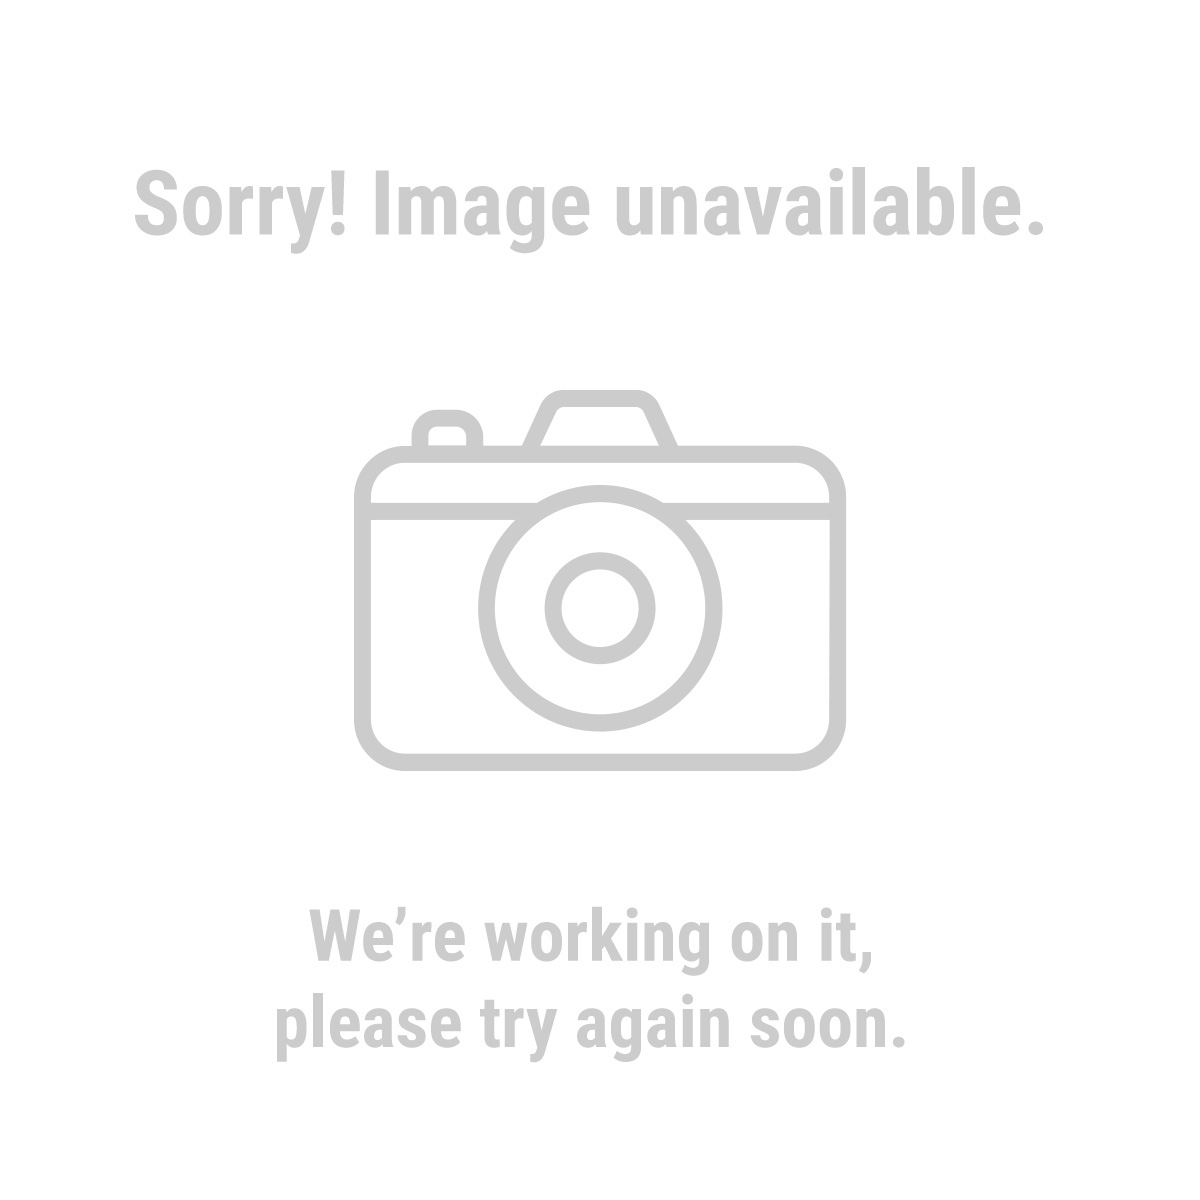 90518 Pack of 50 Trash Bags - 45 Gallon